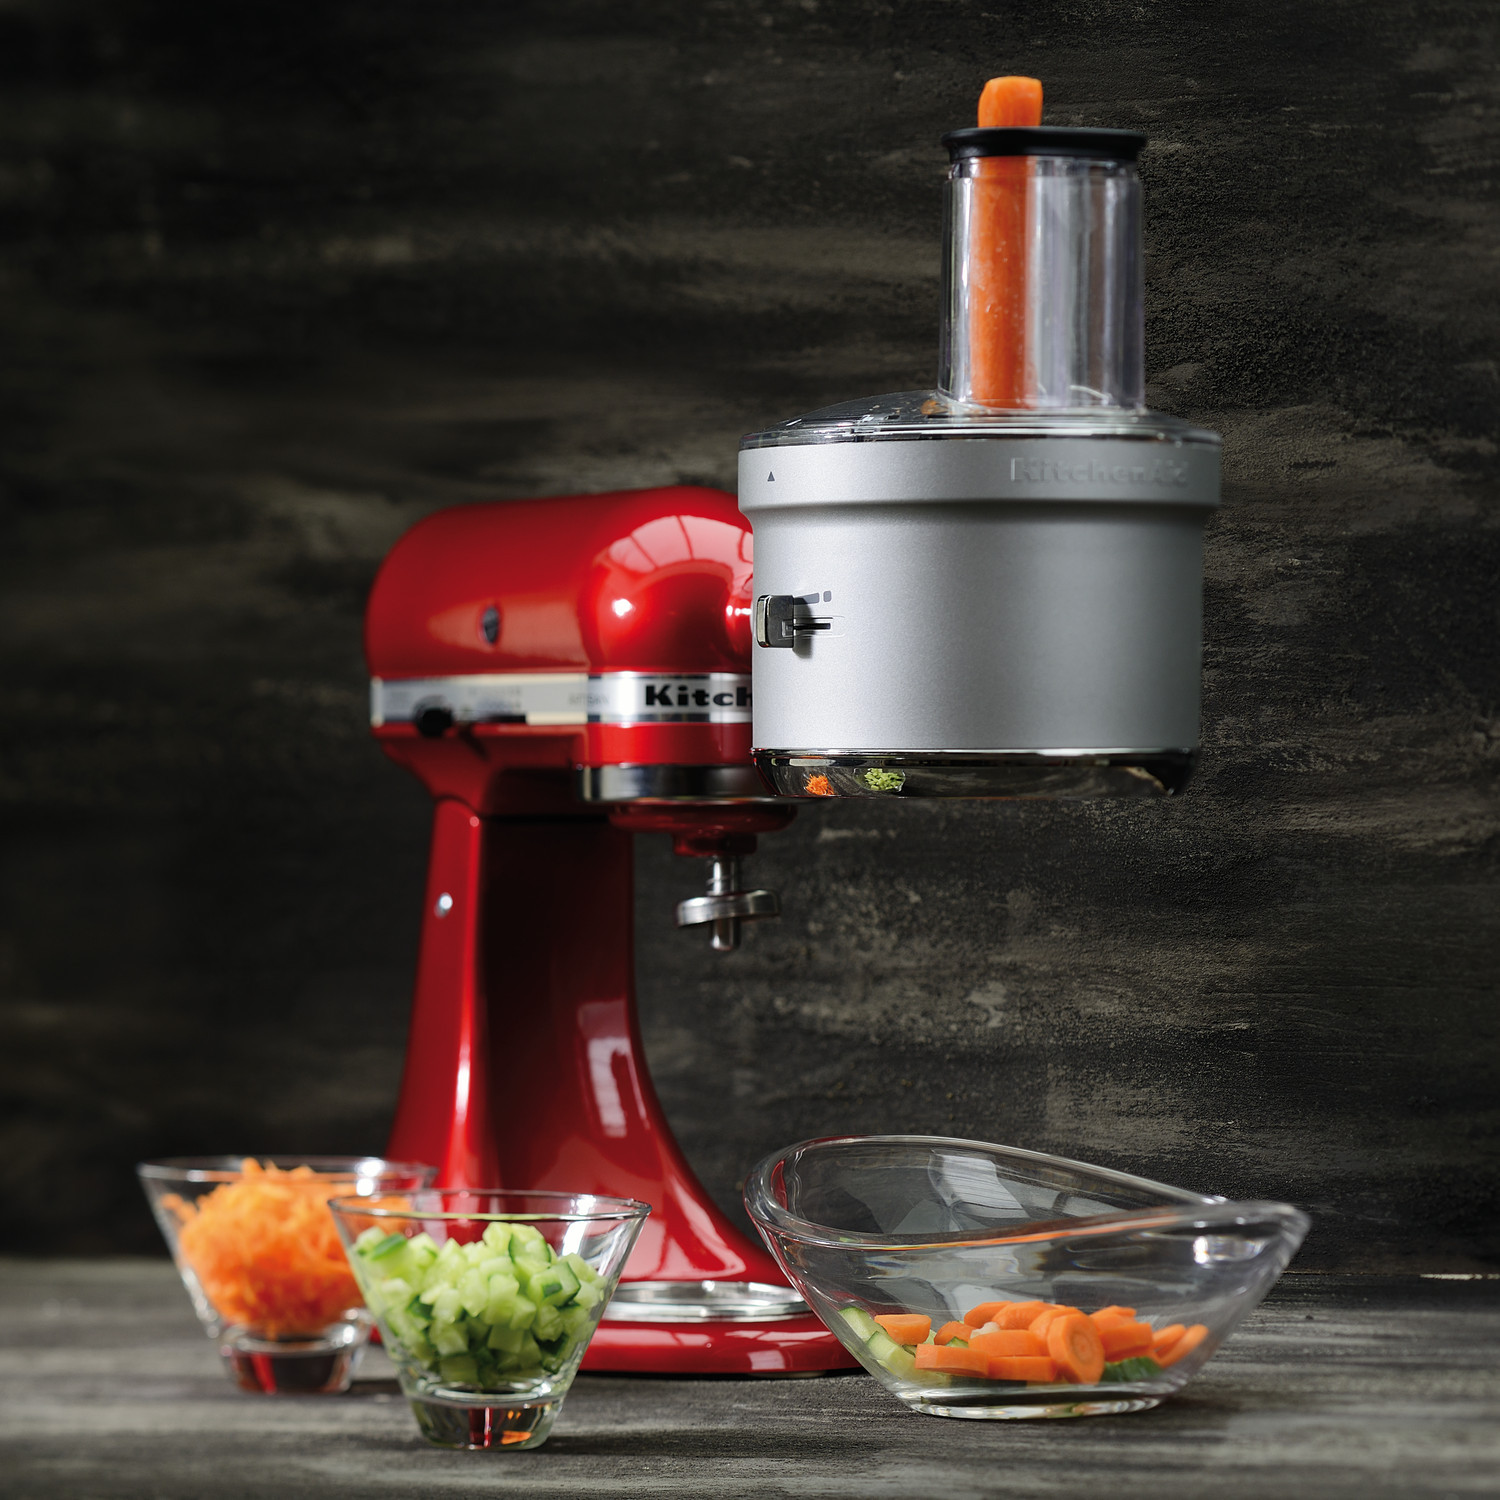 Kitchenaid Food Processor Vorsatz